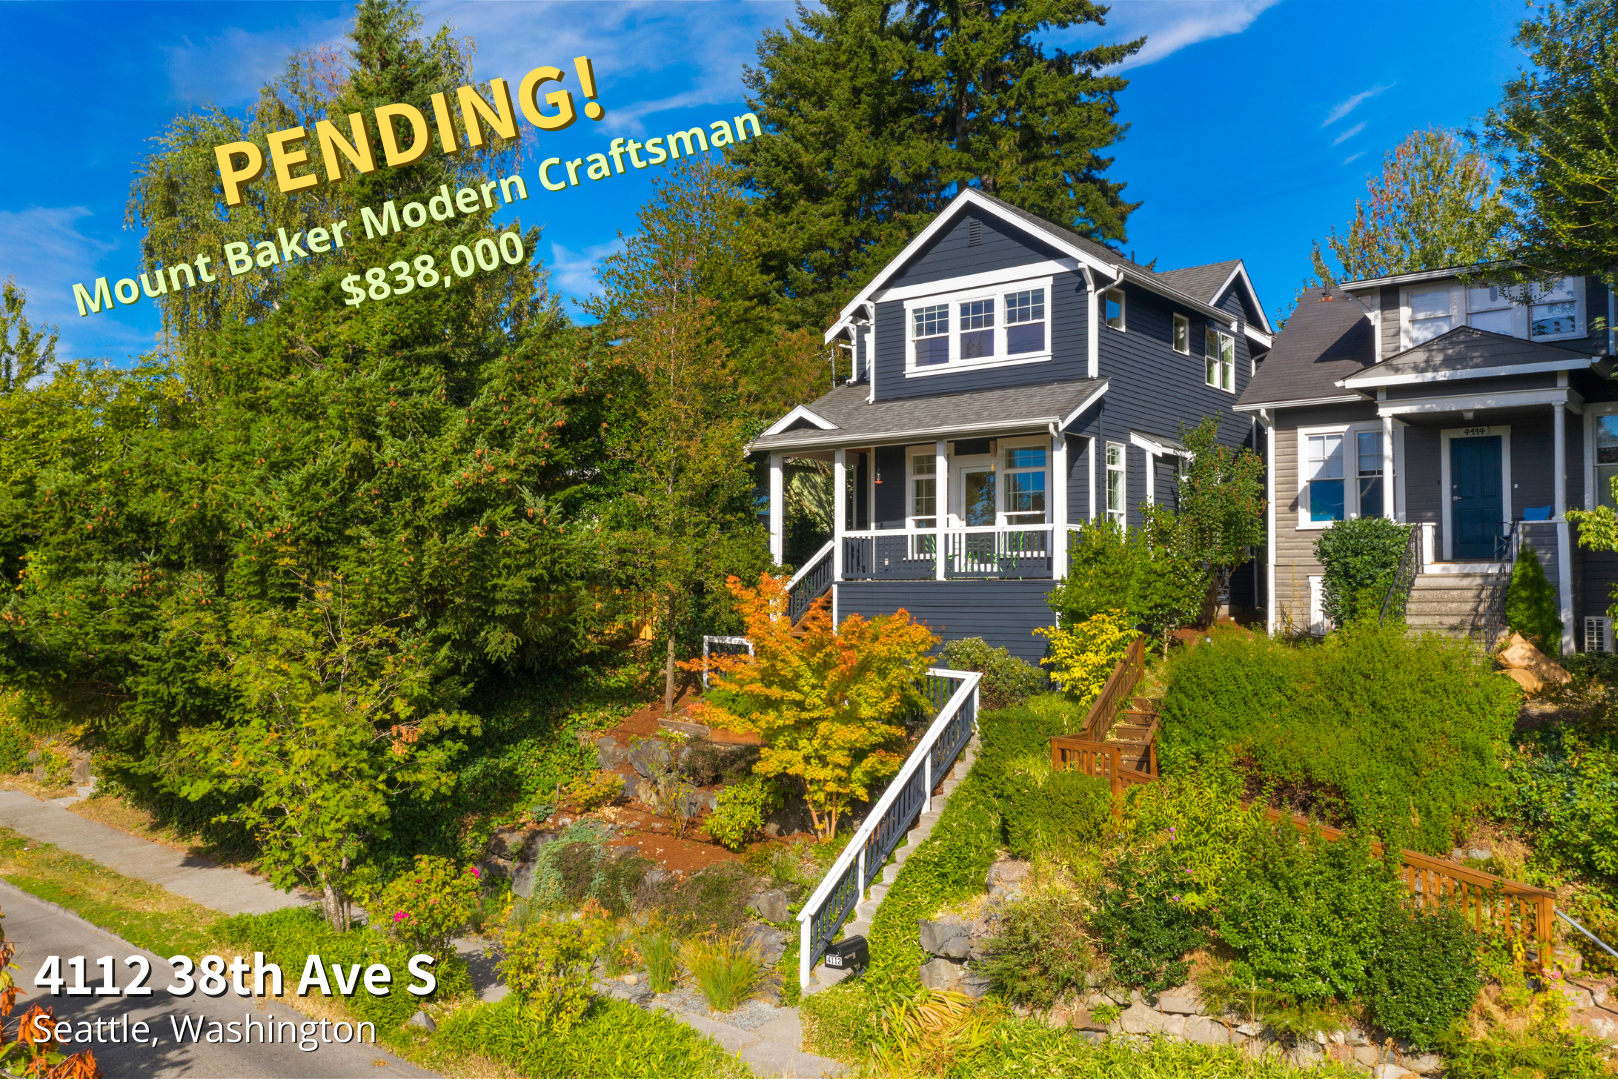 4112 38th Ave S - PENDING!